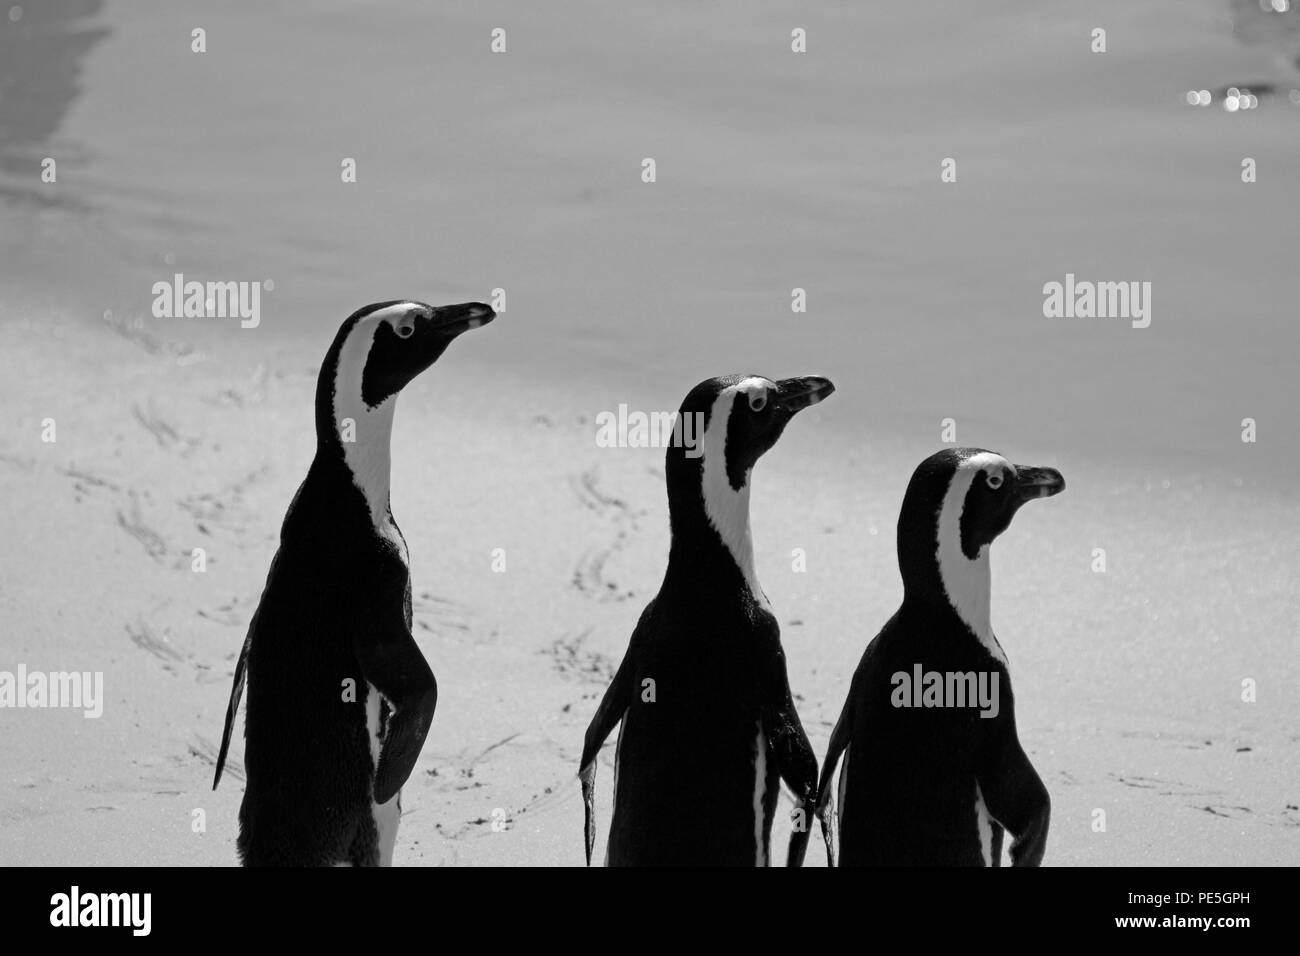 African penguins (Spheniscus demersus) at Boulders Beach Penguin Colony, Simon's Town, Cape Town,South Africa.(B&W photo) - Stock Image